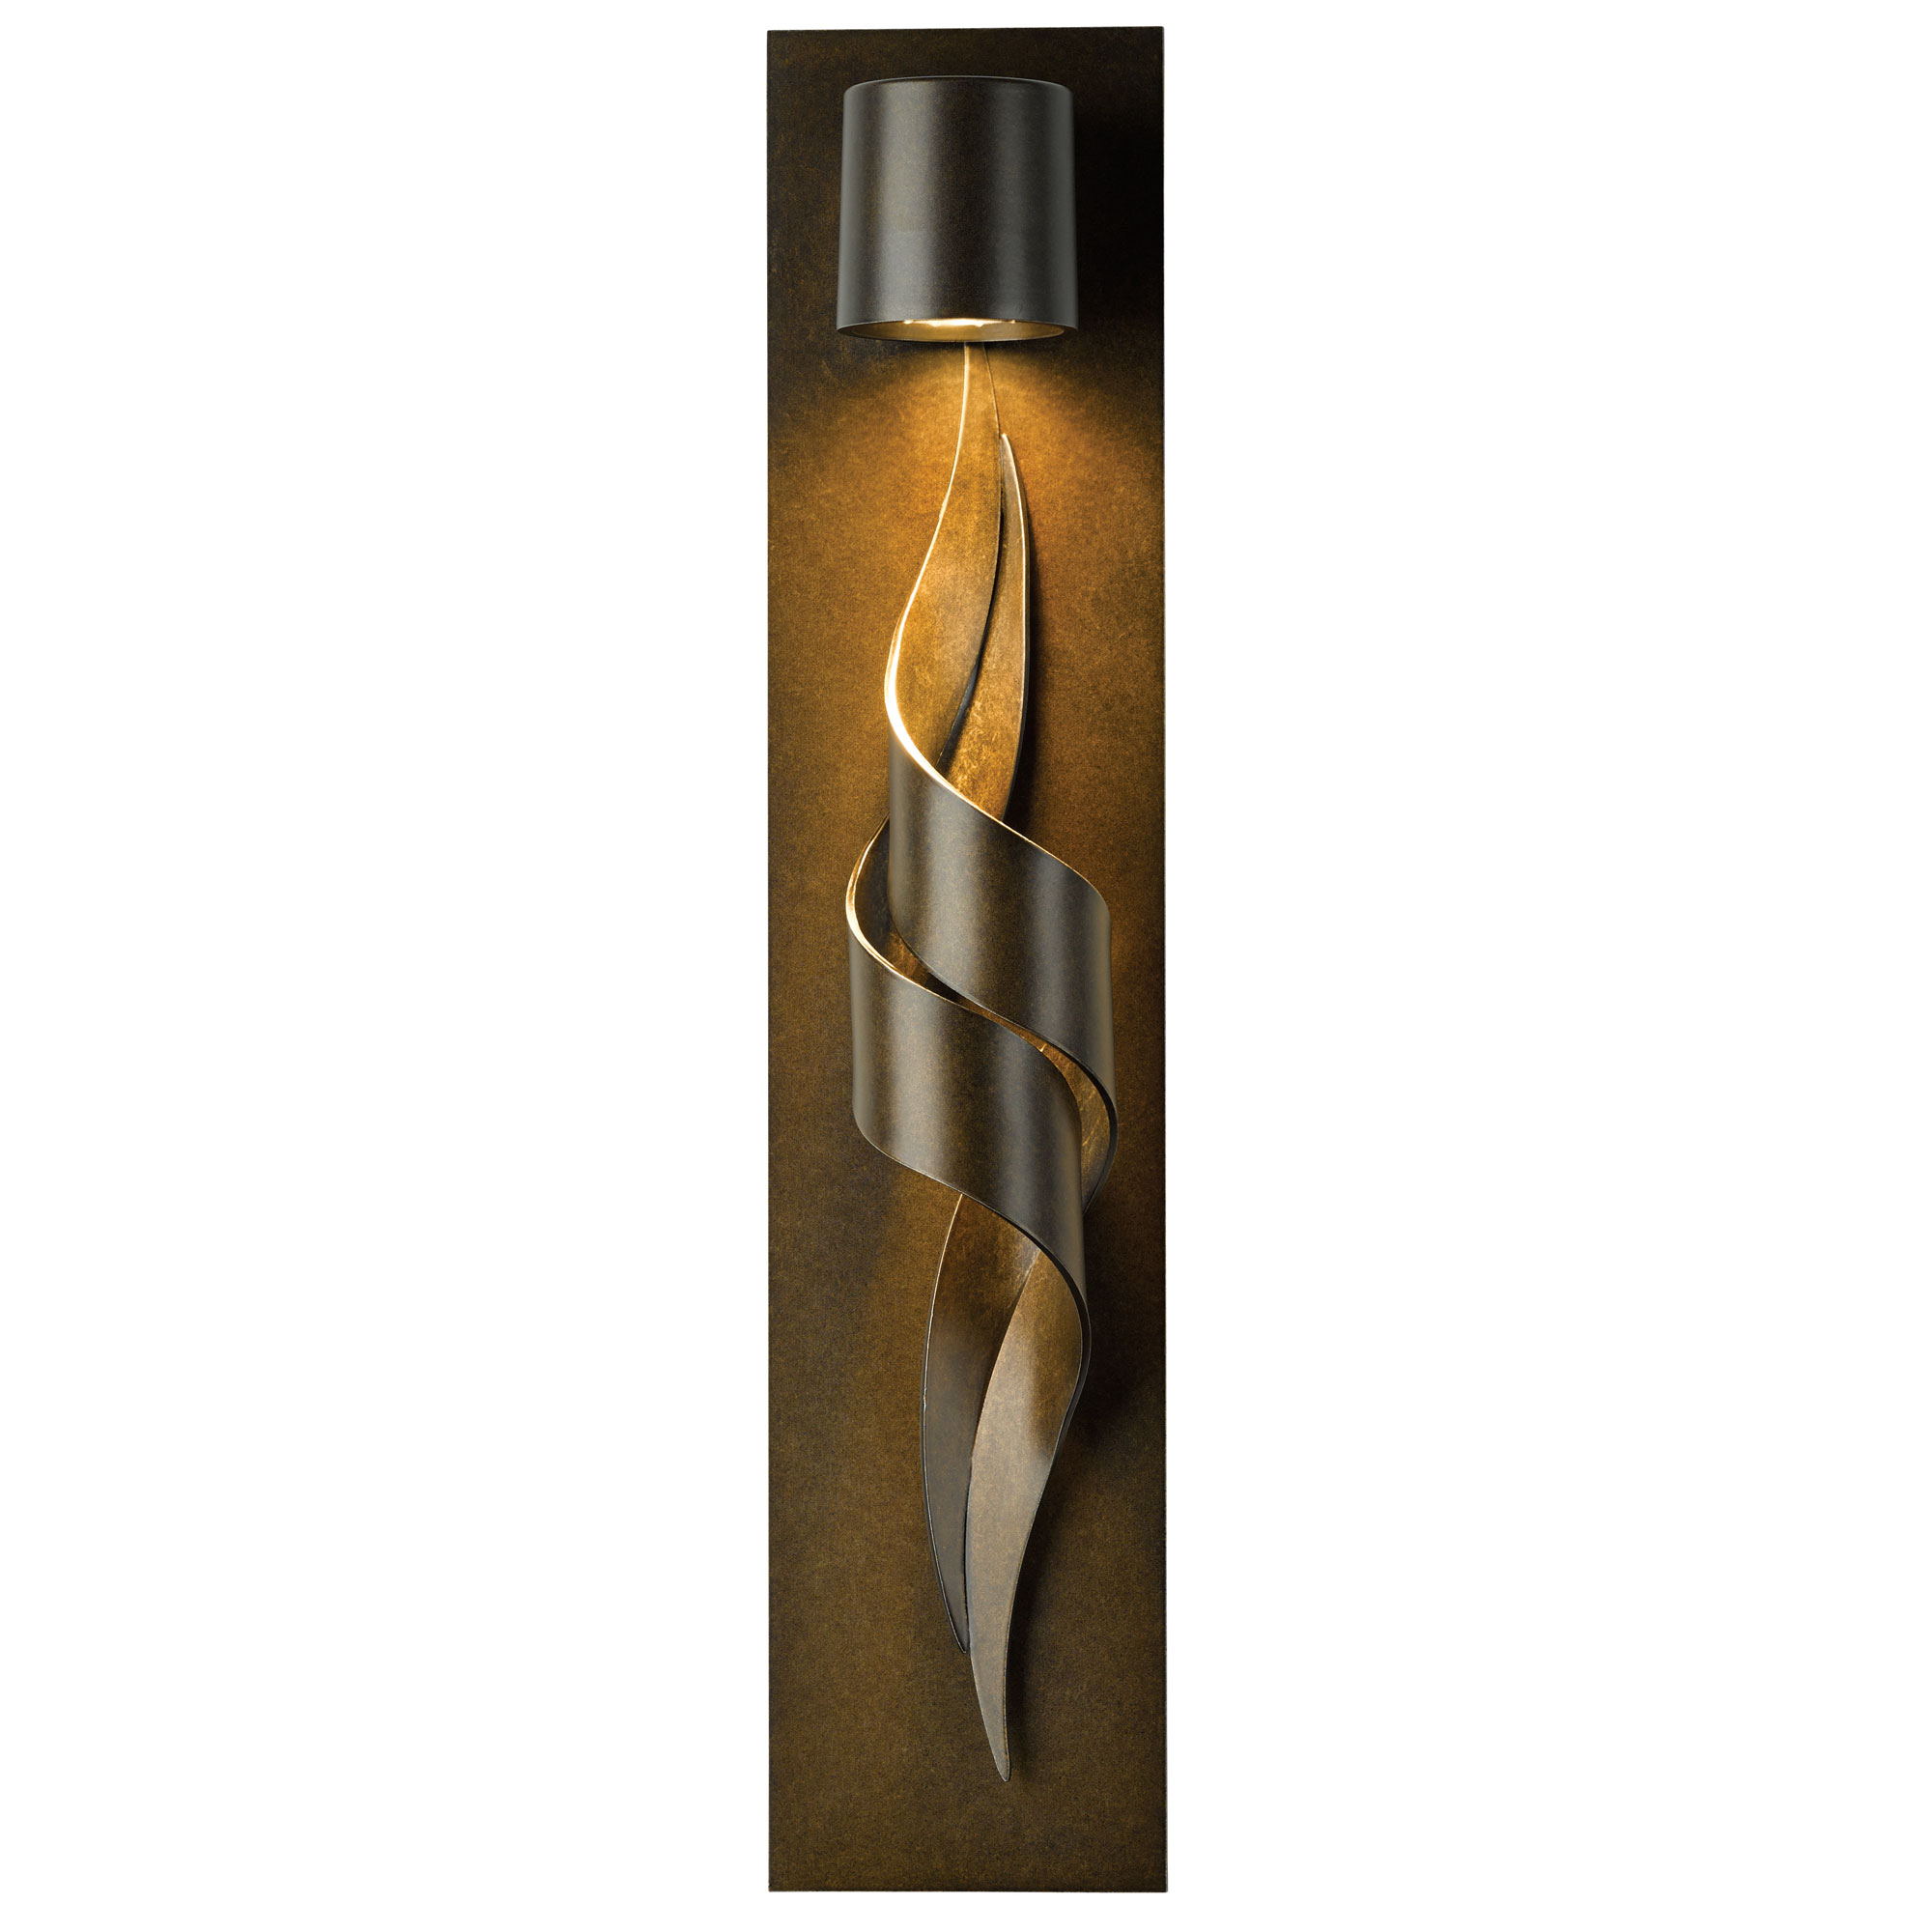 flux outdoor wall sconce by hubbardton forge 30309005no - Hubbardton Forge